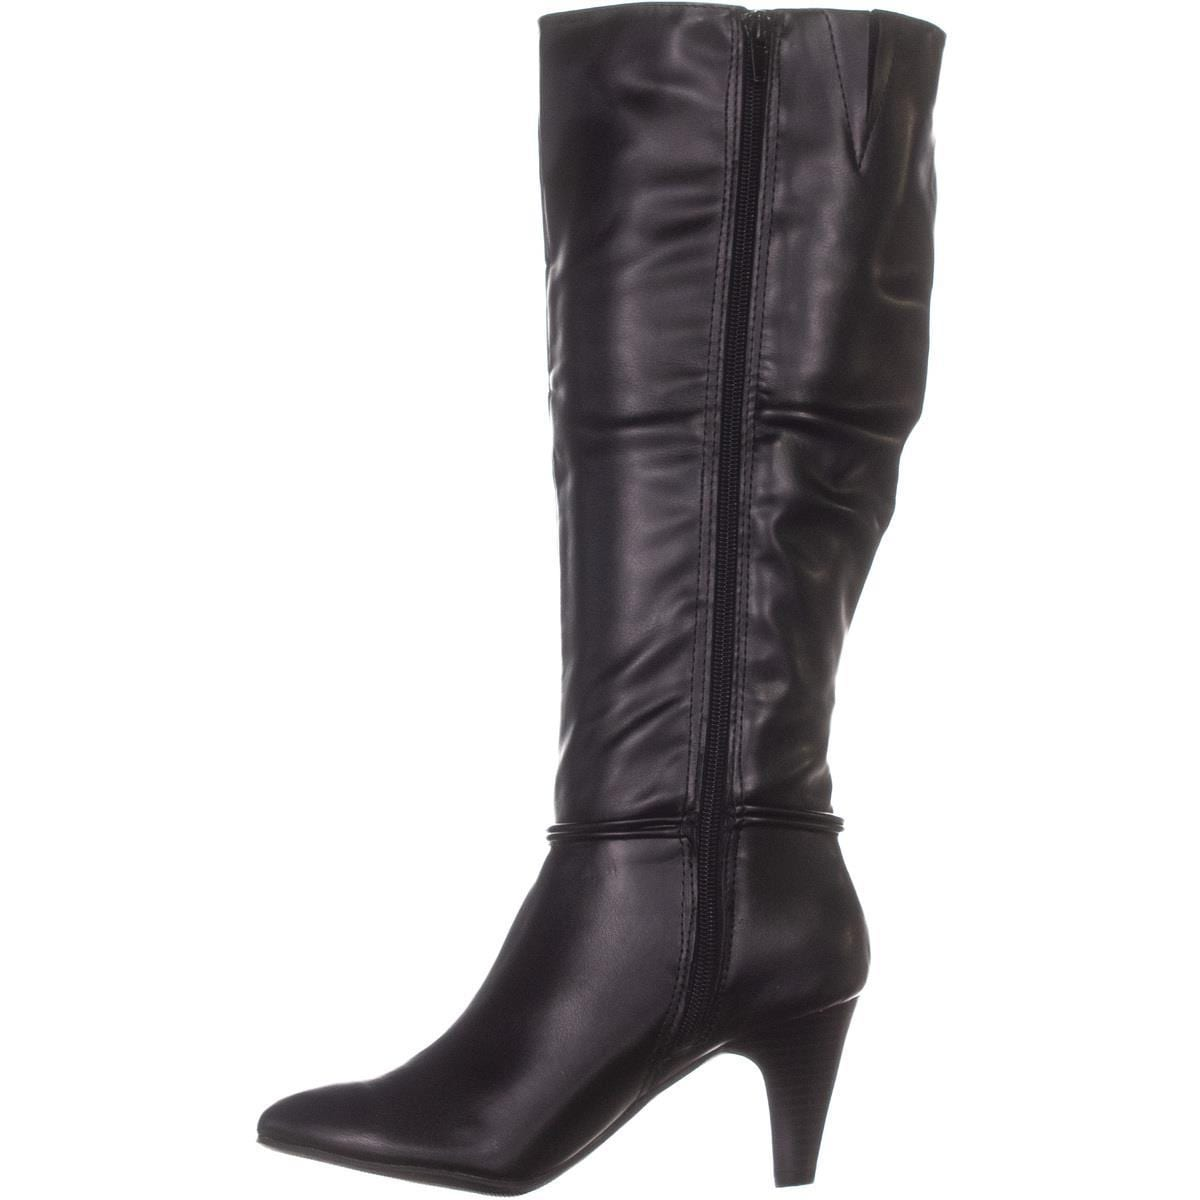 c308f206cf6 Shop KS35 Hollee Knee High Boots